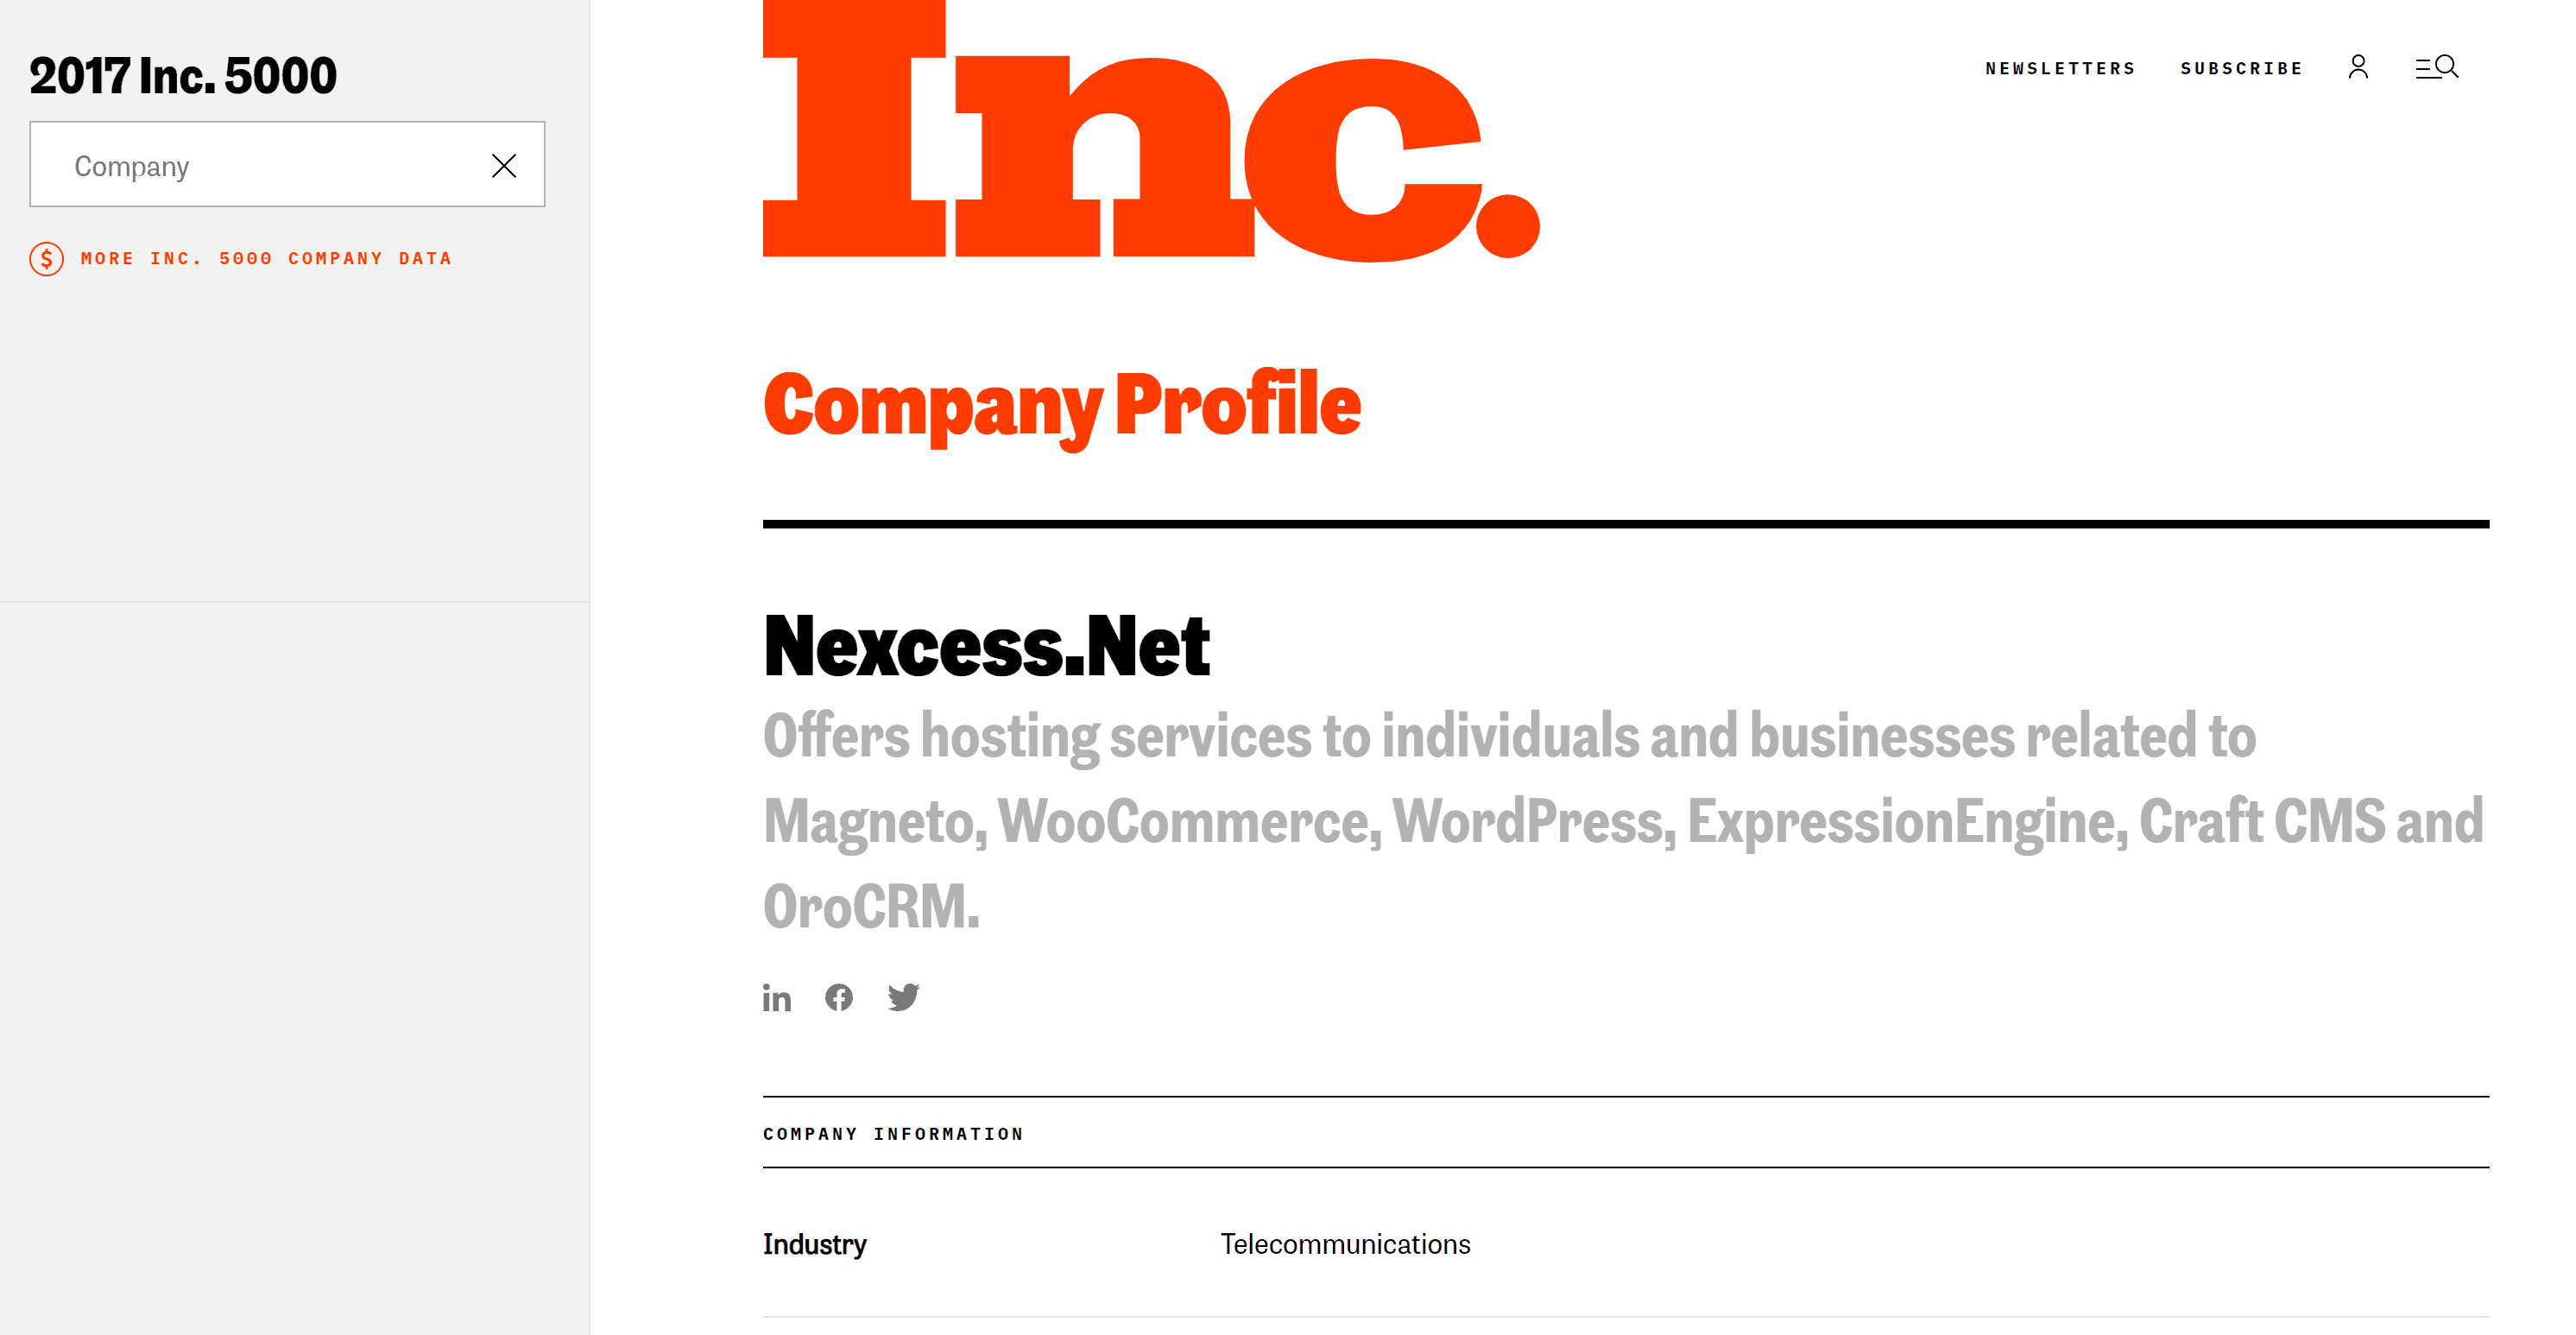 Nexcess has made the Inc 5000 list 8 times since 2010